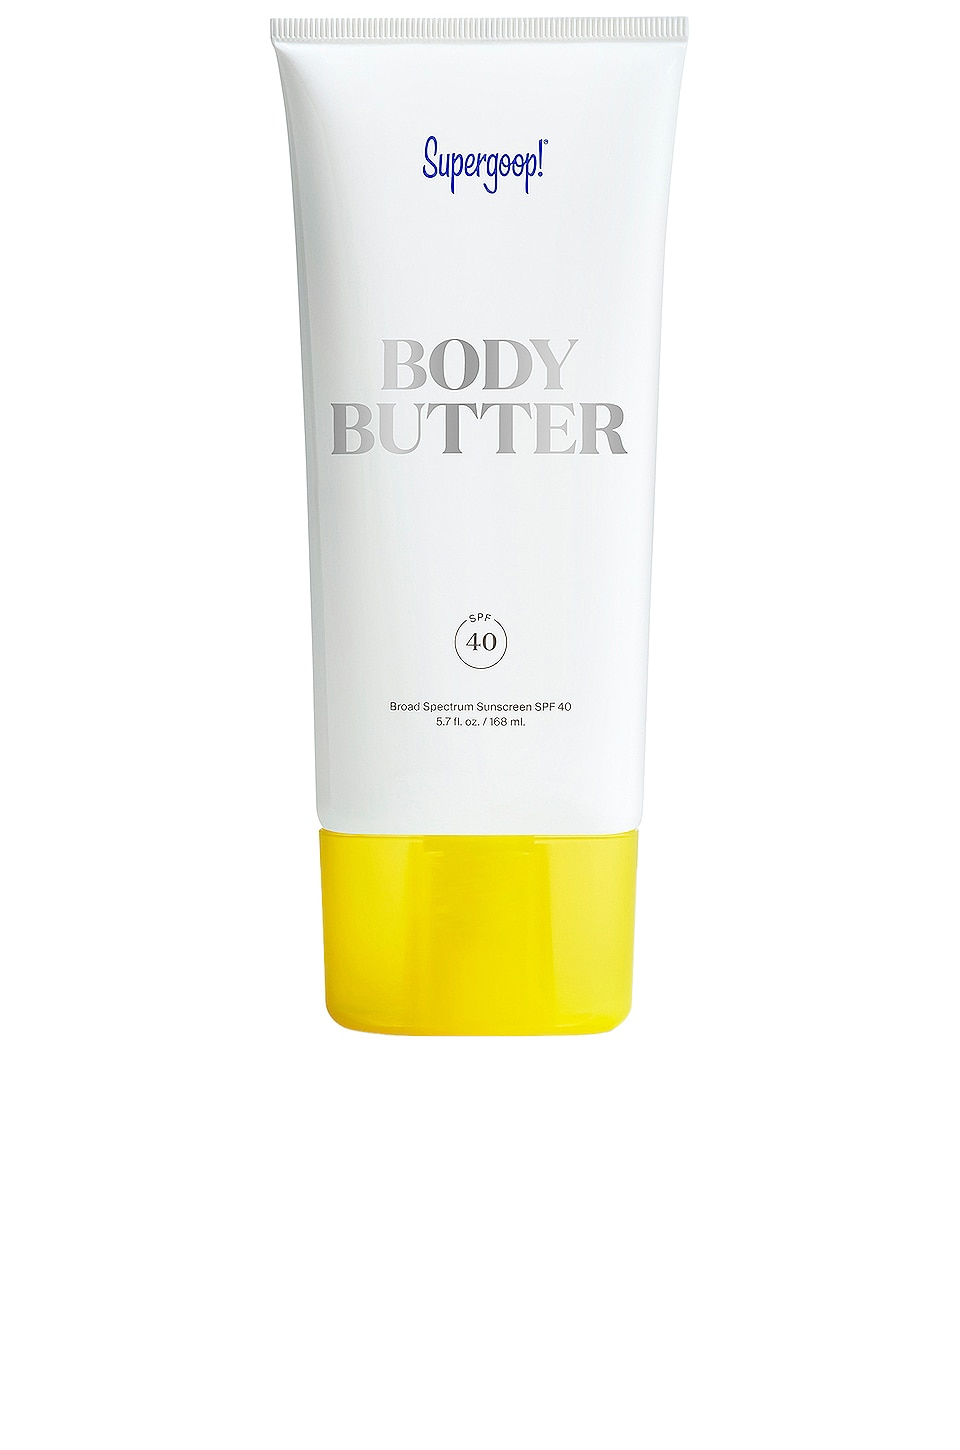 Supergoop! Forever Young Body Butter SPF 40 5.7 oz